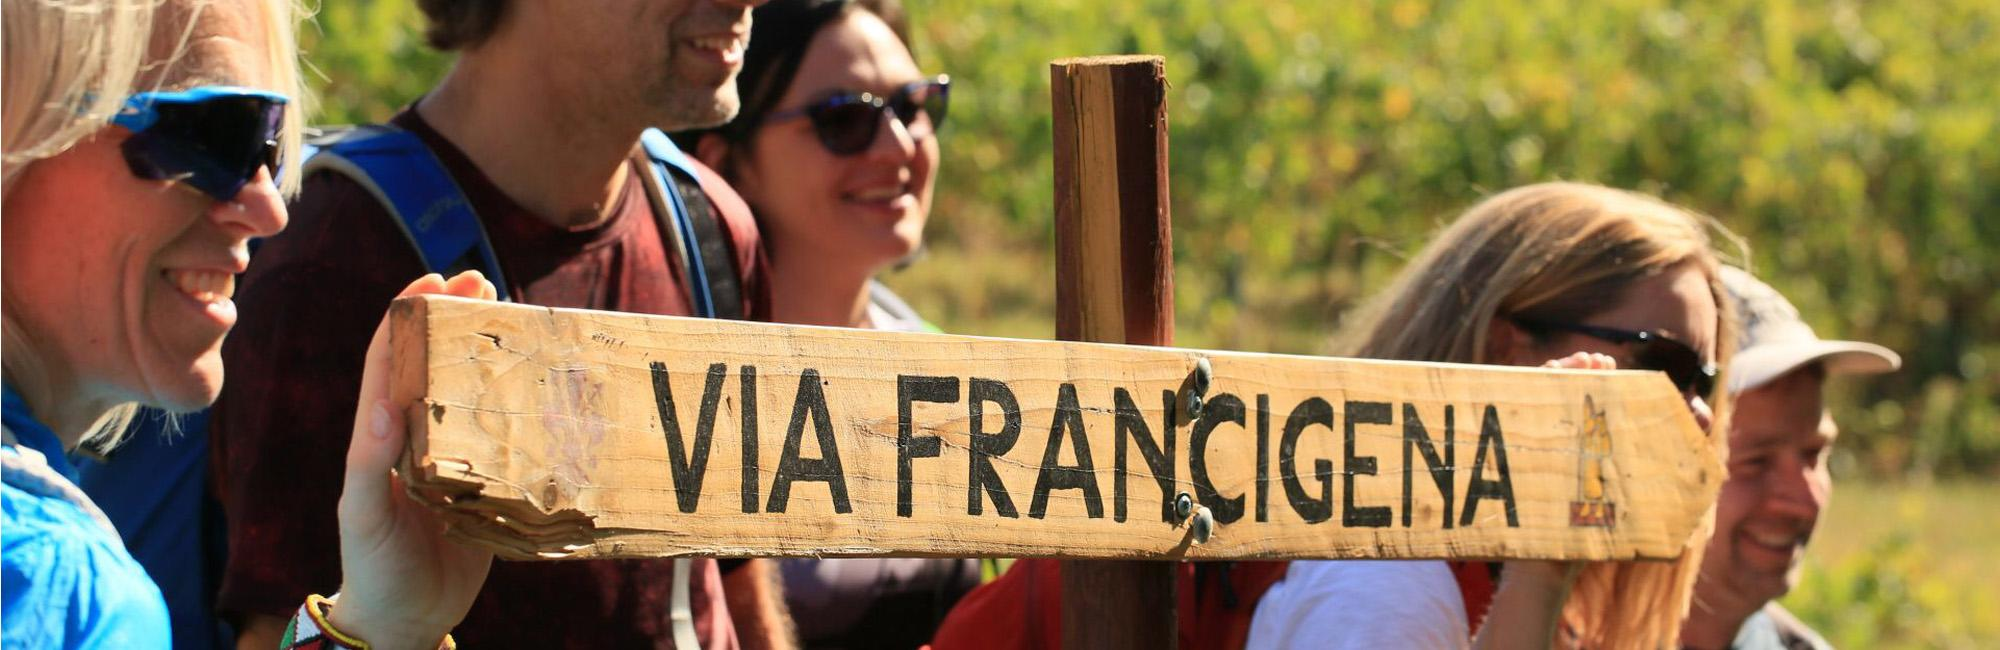 Pilgrims with a signal of Via Francigena